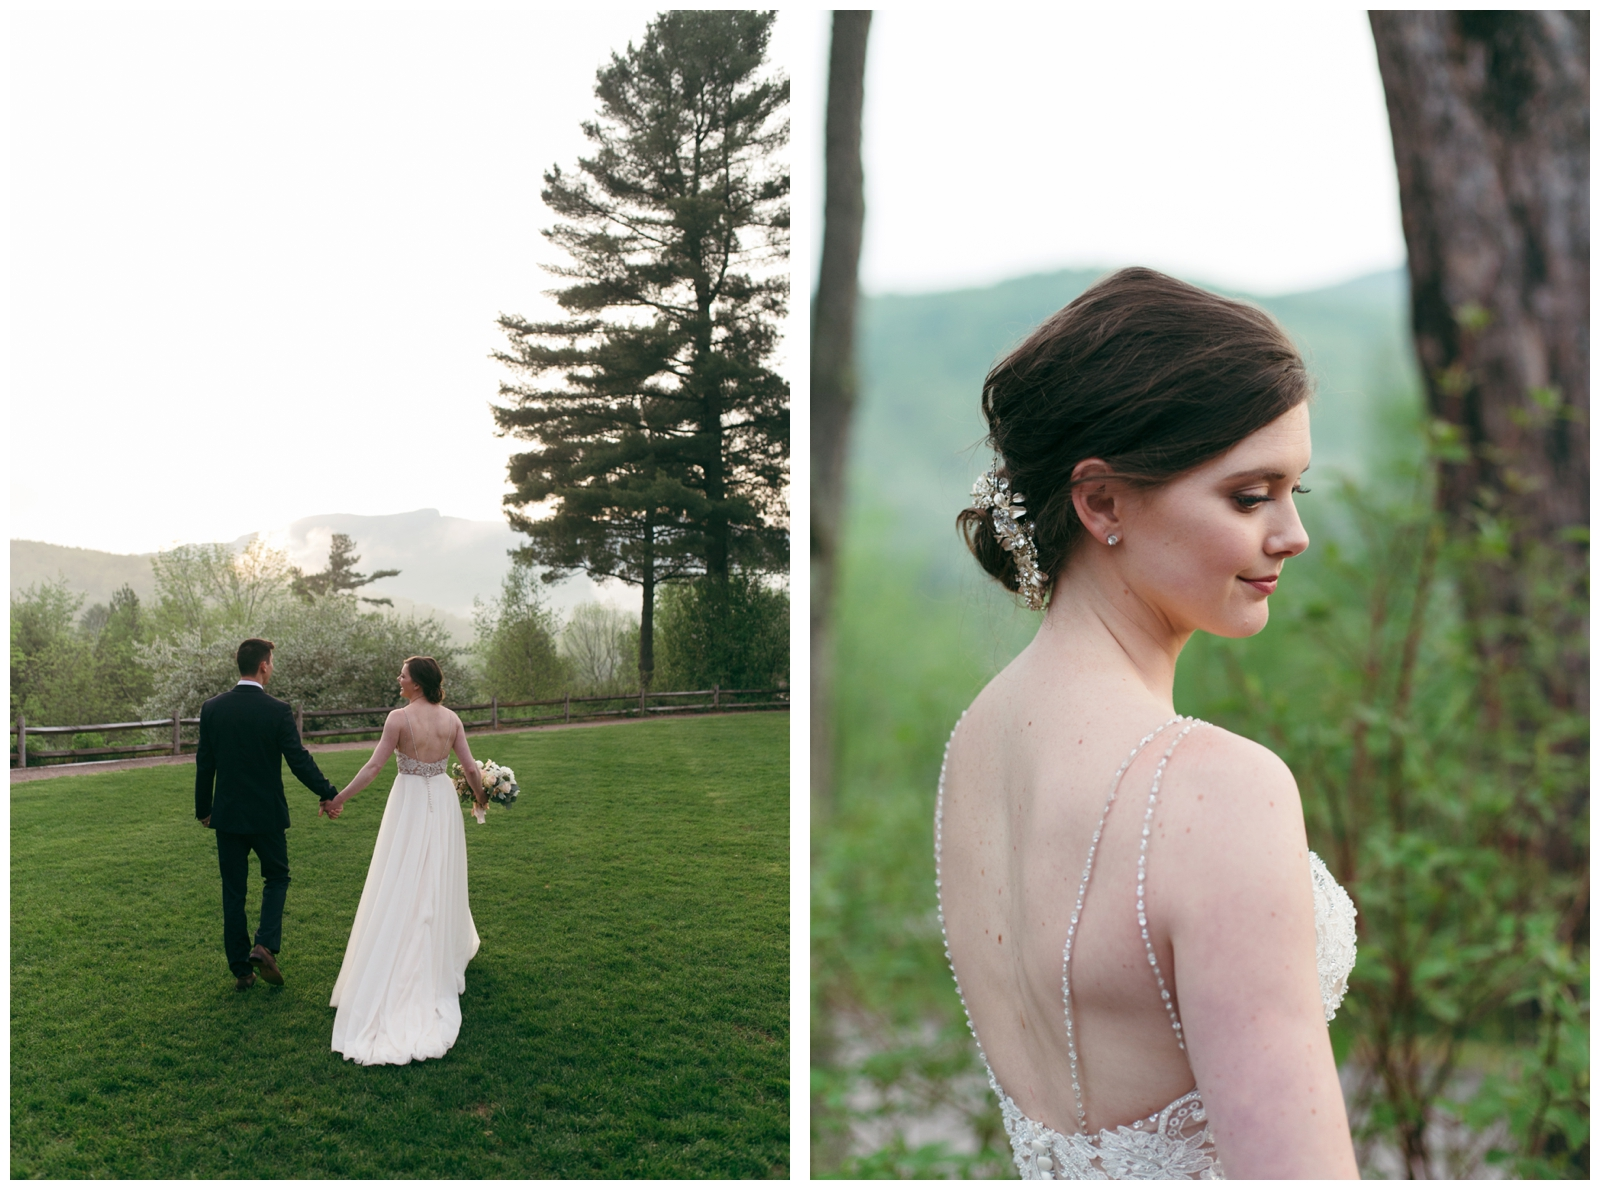 Vermont-Elopement-Topnotch-Stowe-Wedding-Bailey-Q-Photo-Boston-Wedding-Photographer-055.jpg